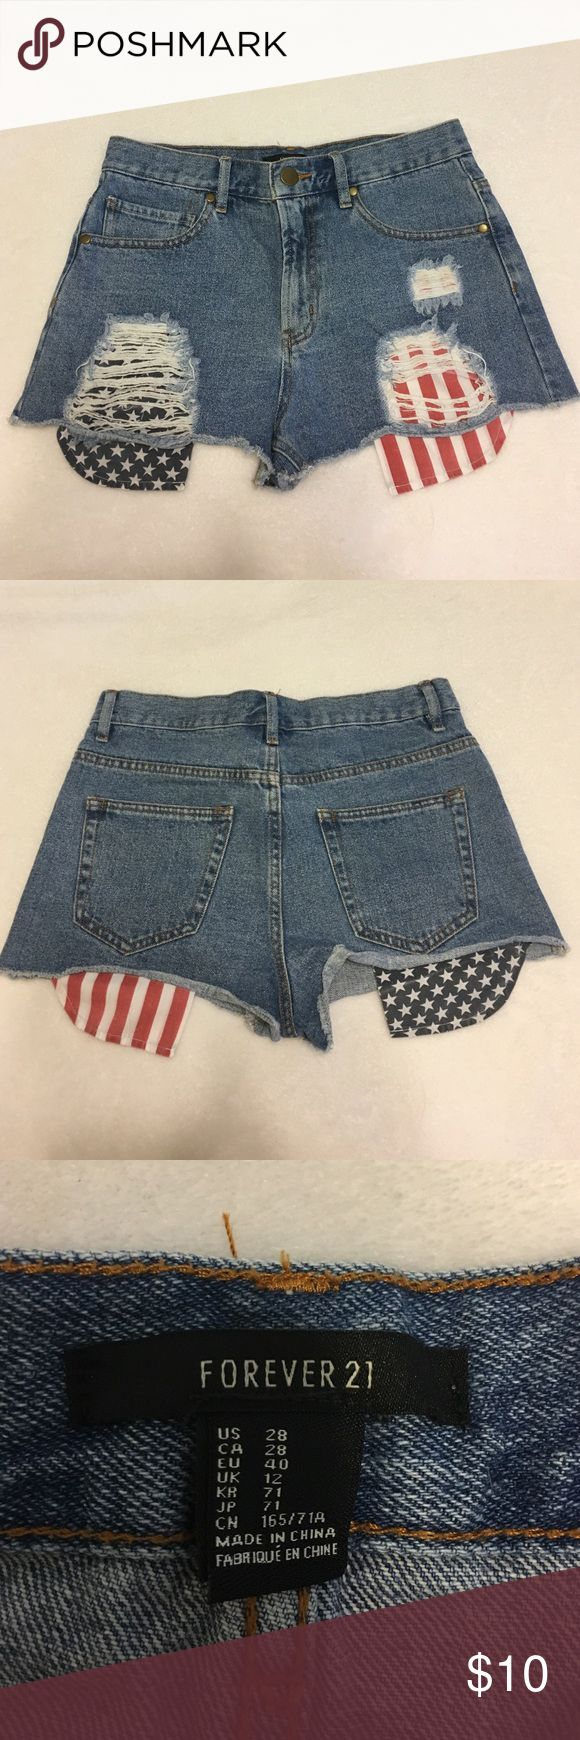 Forever 21 american flag shorts Distressed denim shorts with Star and Stripe designs on the pockets Forever 21 Shorts Jean Shorts